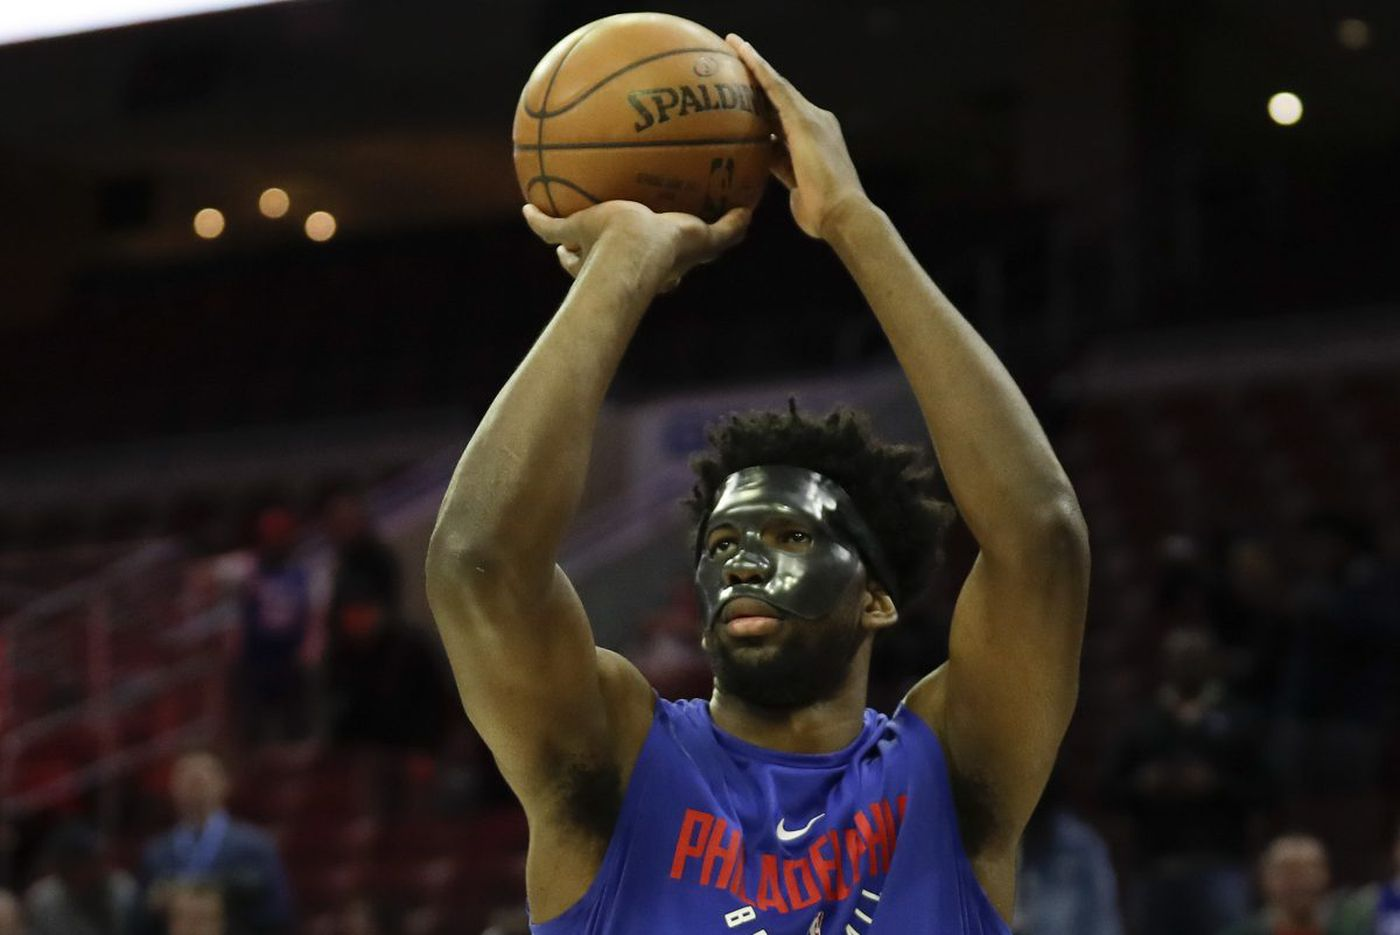 Joel Embiid won't play Game 1, Sixers coach Brett Brown says